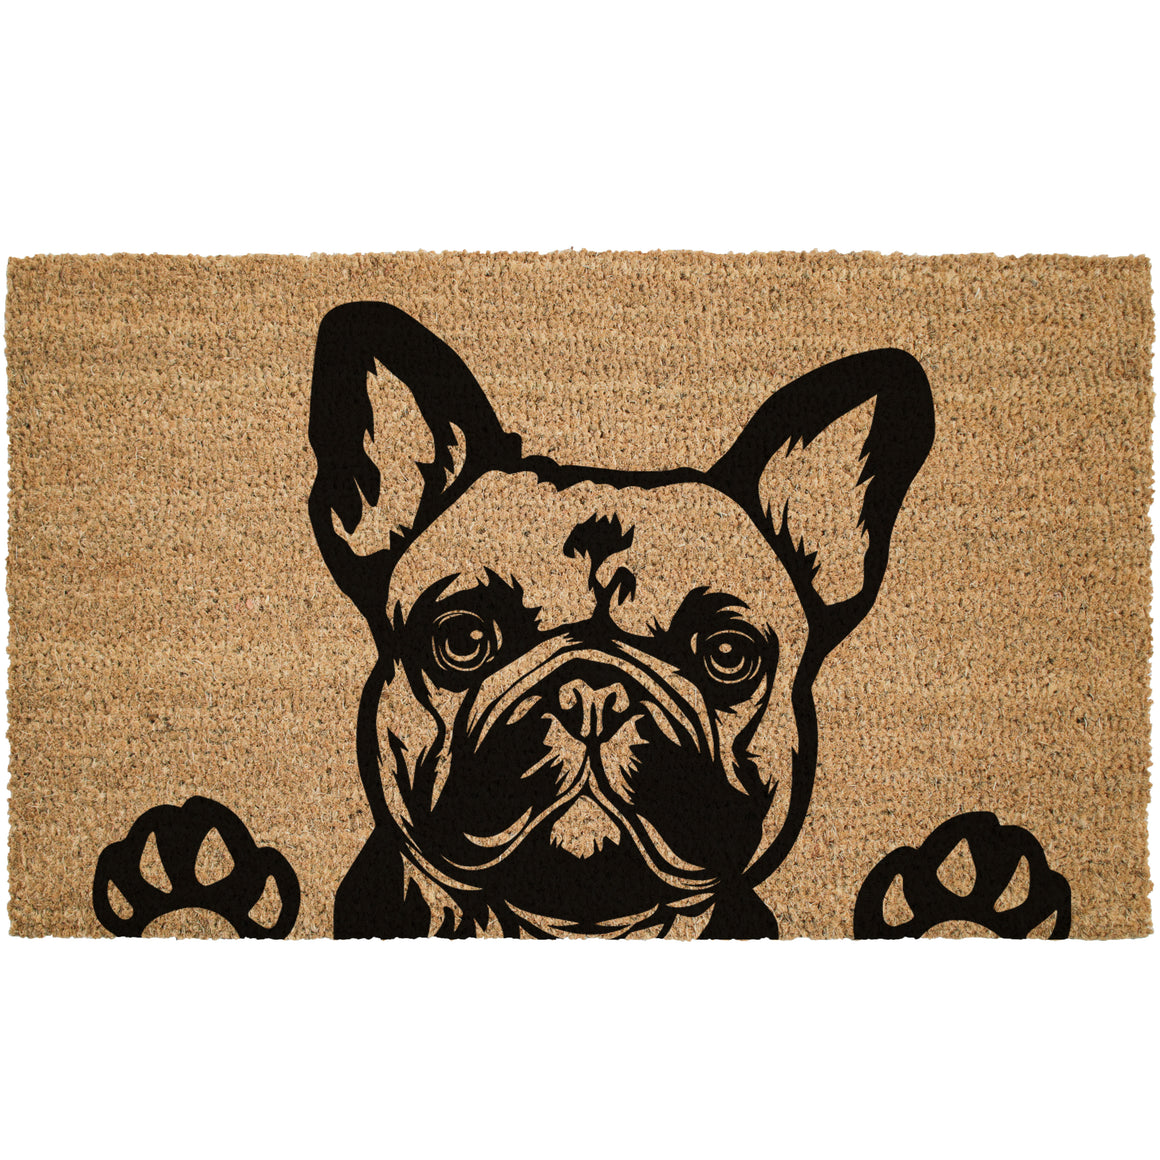 French Bulldog Coir Doormat